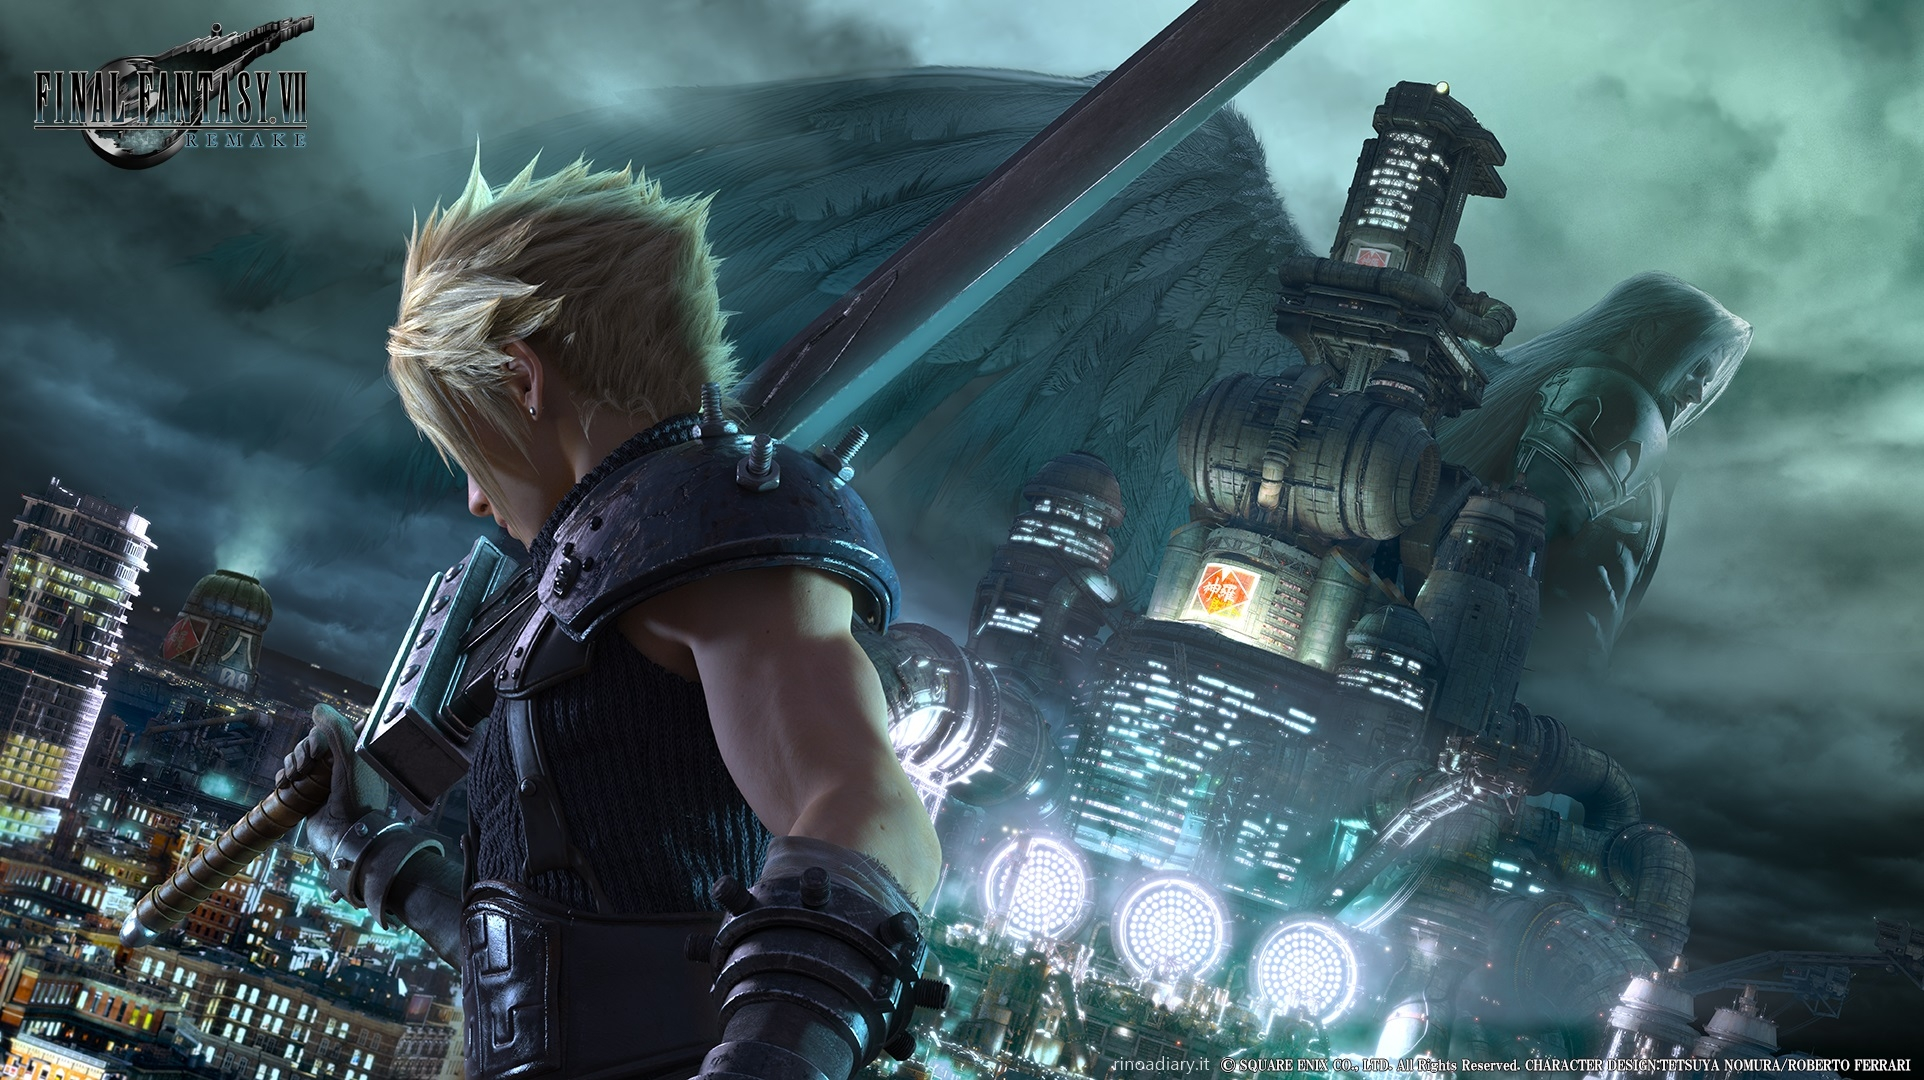 Key-Visual di Cloud, Final Fantasy VII Remake